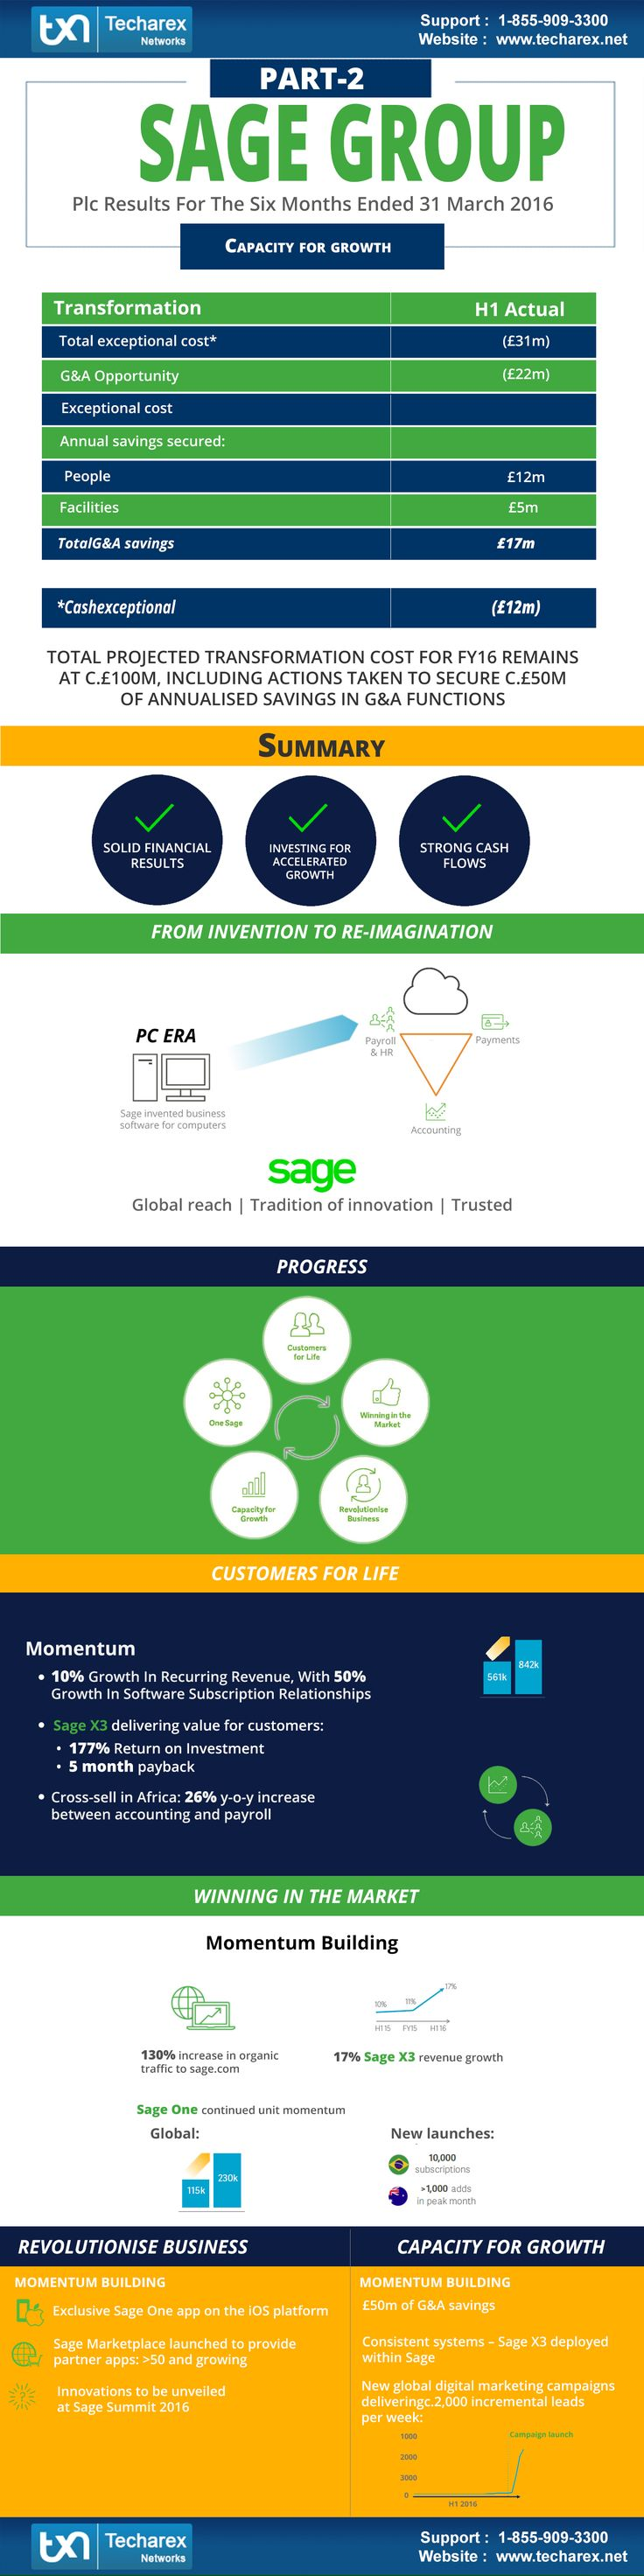 Sage Group PLC Report (Part-2)  Techarex Networks is most trusted company of the world based in USA for cloud hosting services of accounting software like Sahe 50, Sage 100 and #QuickBooksEnterprise.  #Sage50Hosting #Sage100Hosting #Sage50CloudHosting